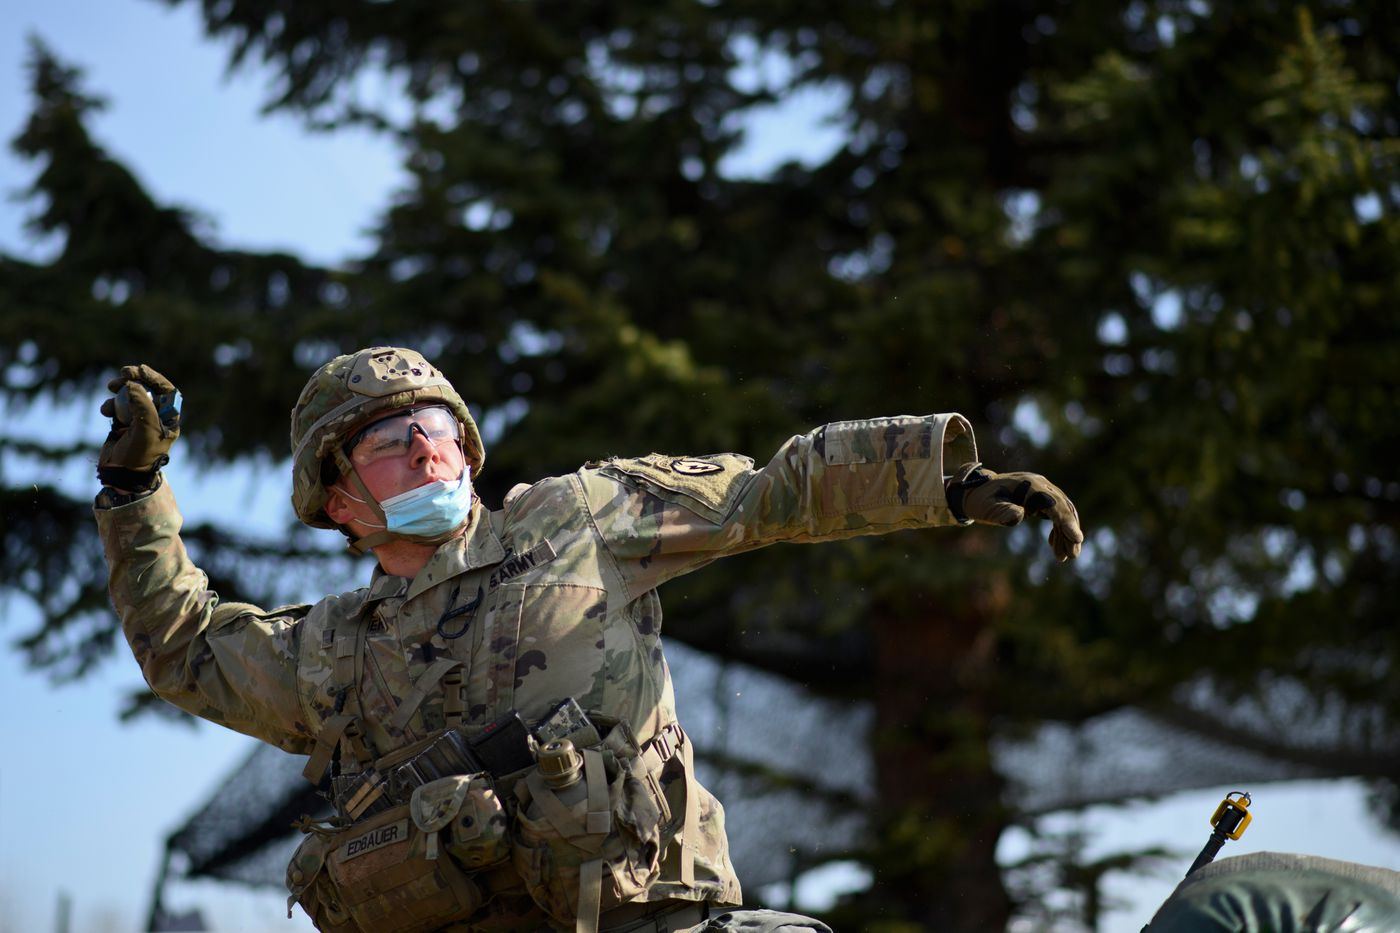 First Lt. Connor Edbauer tosses a grenade replica during testing on April 27, 2021. (Marc Lester / ADN)